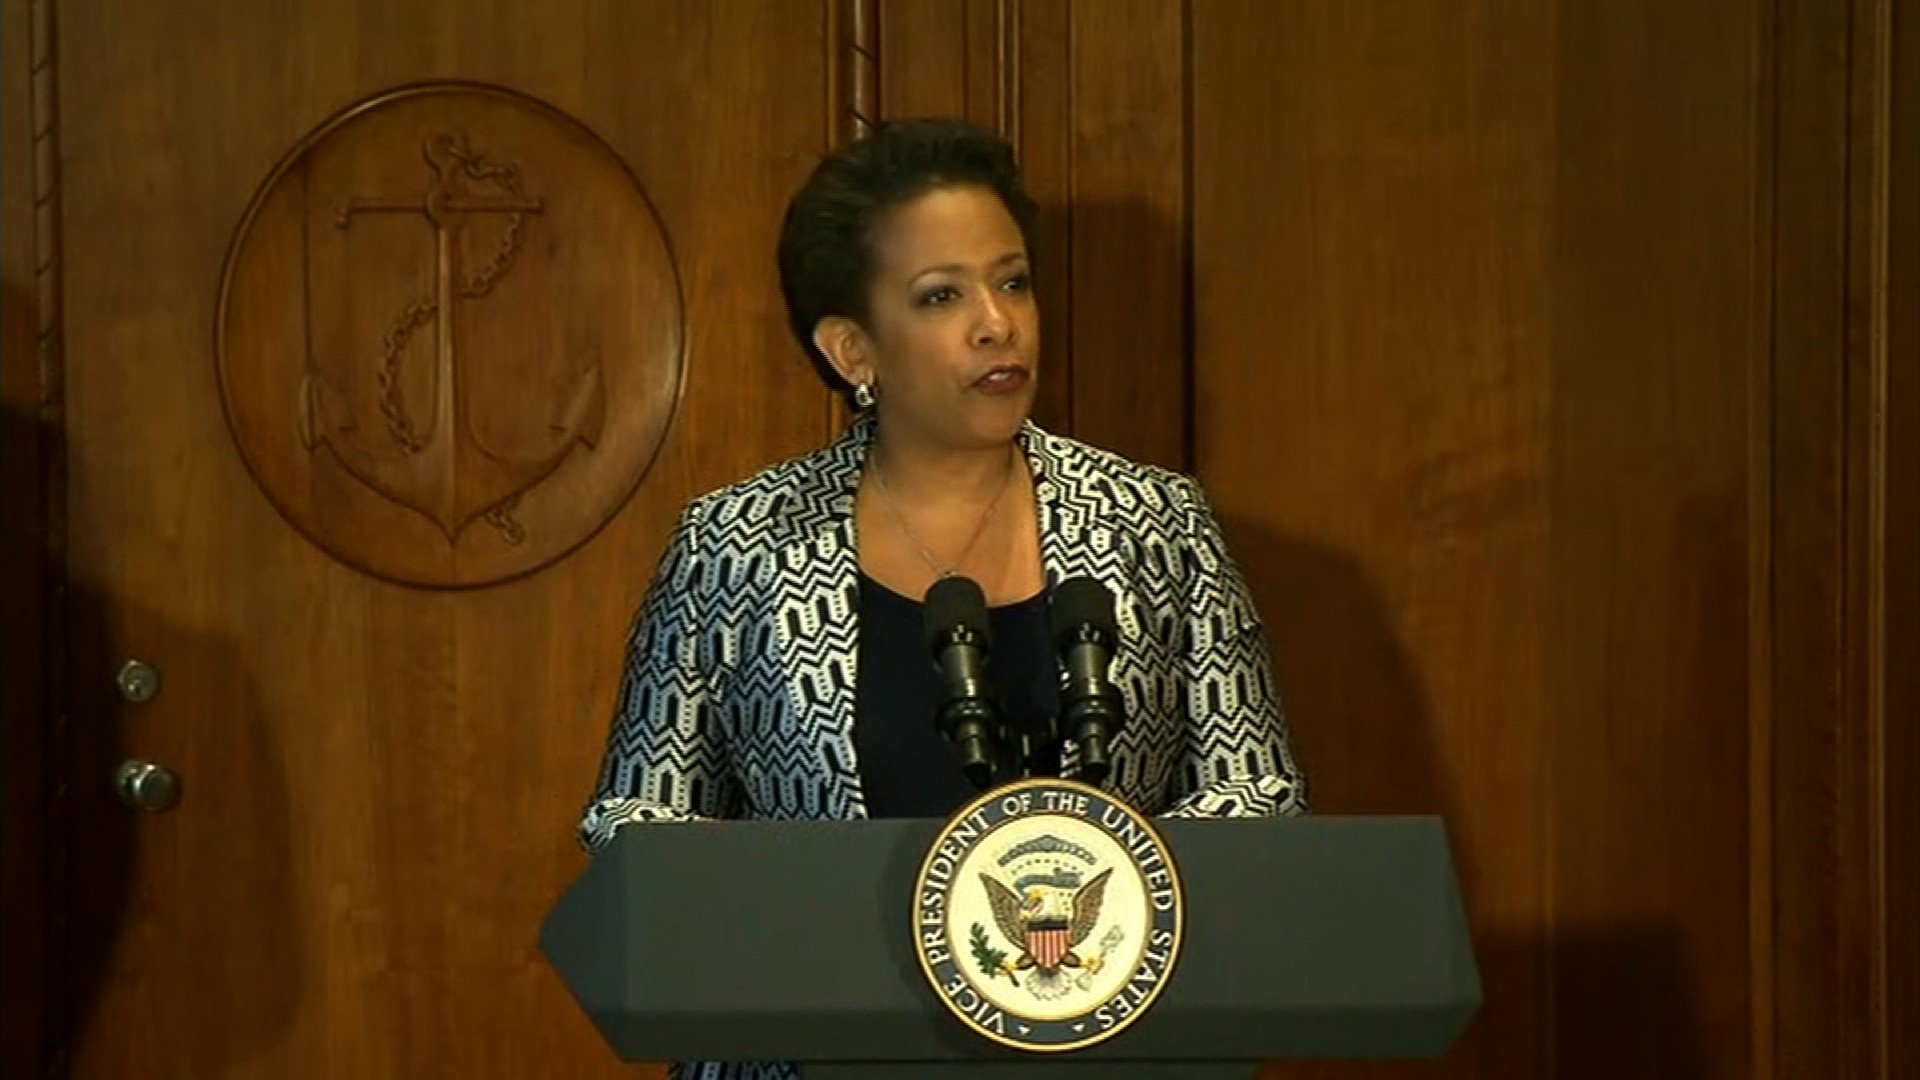 Loretta Lynch makes history